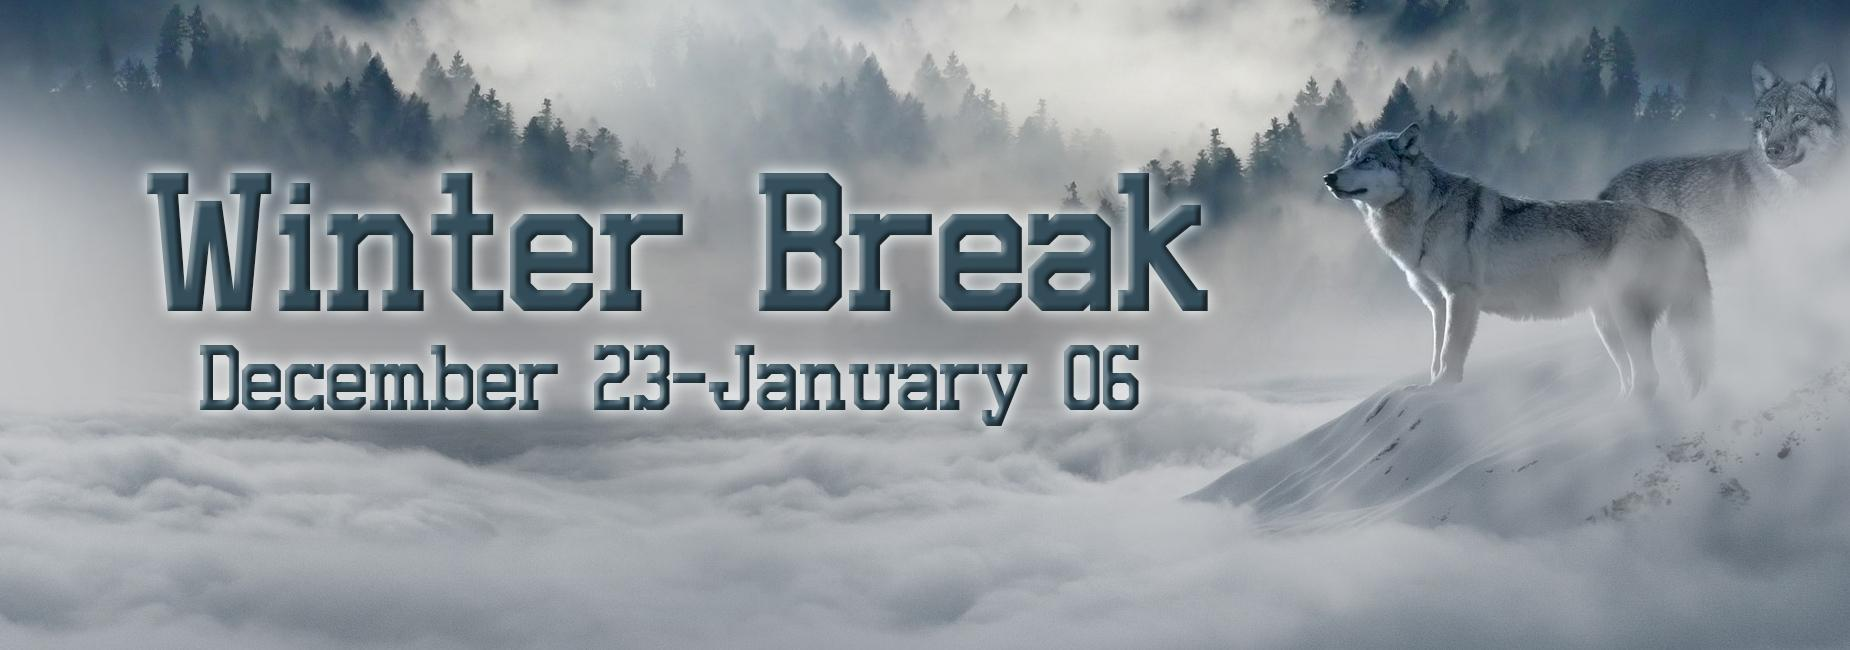 Winter Break December 23-January 06